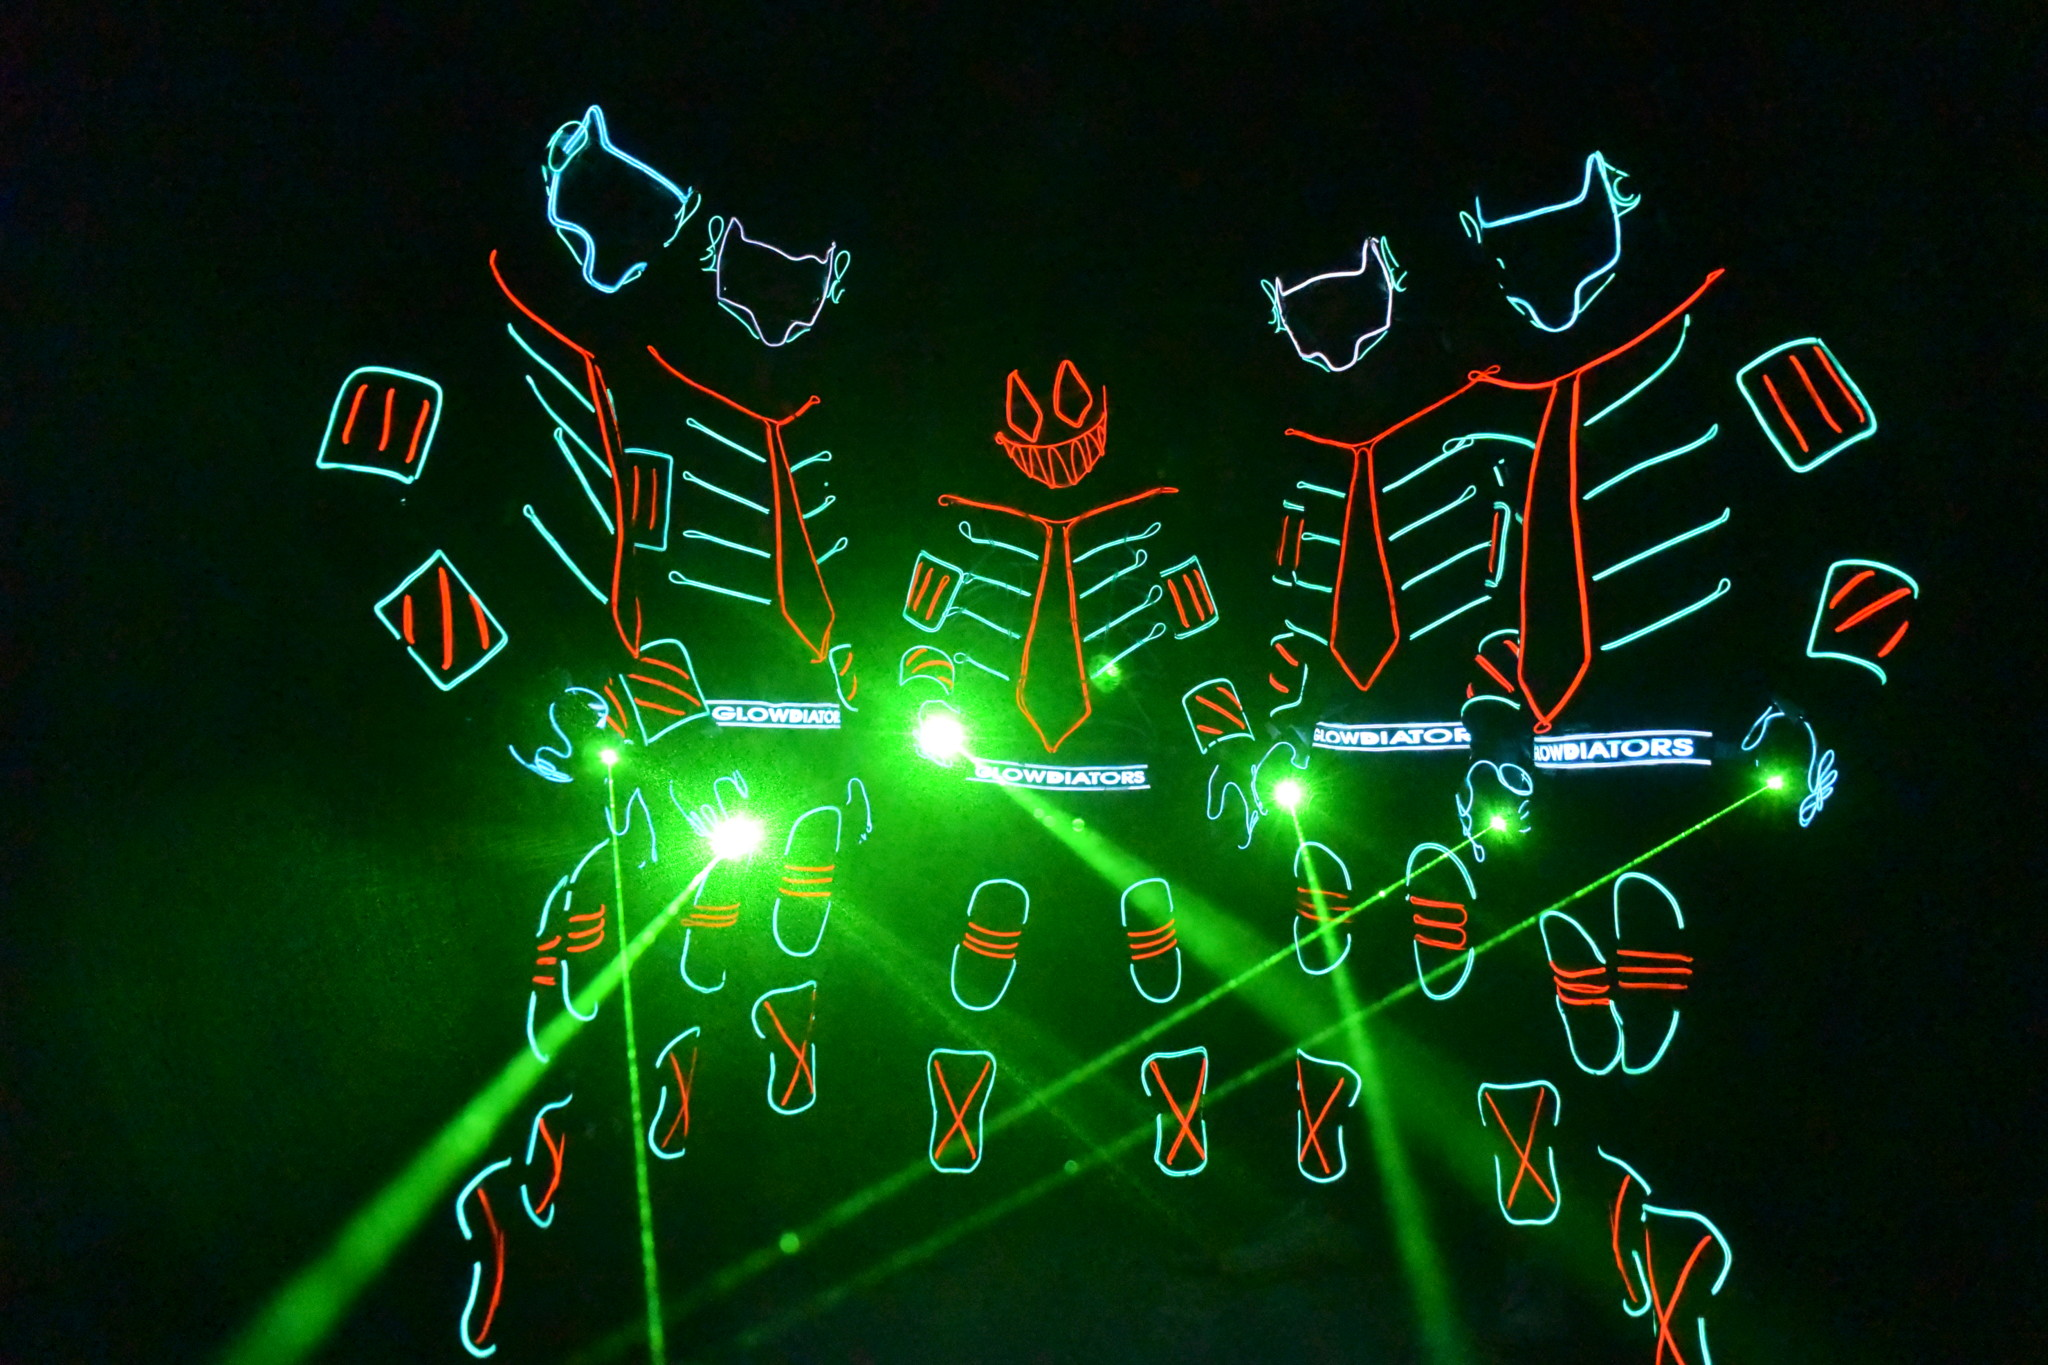 The Glowdiator - Best Dance Company in India